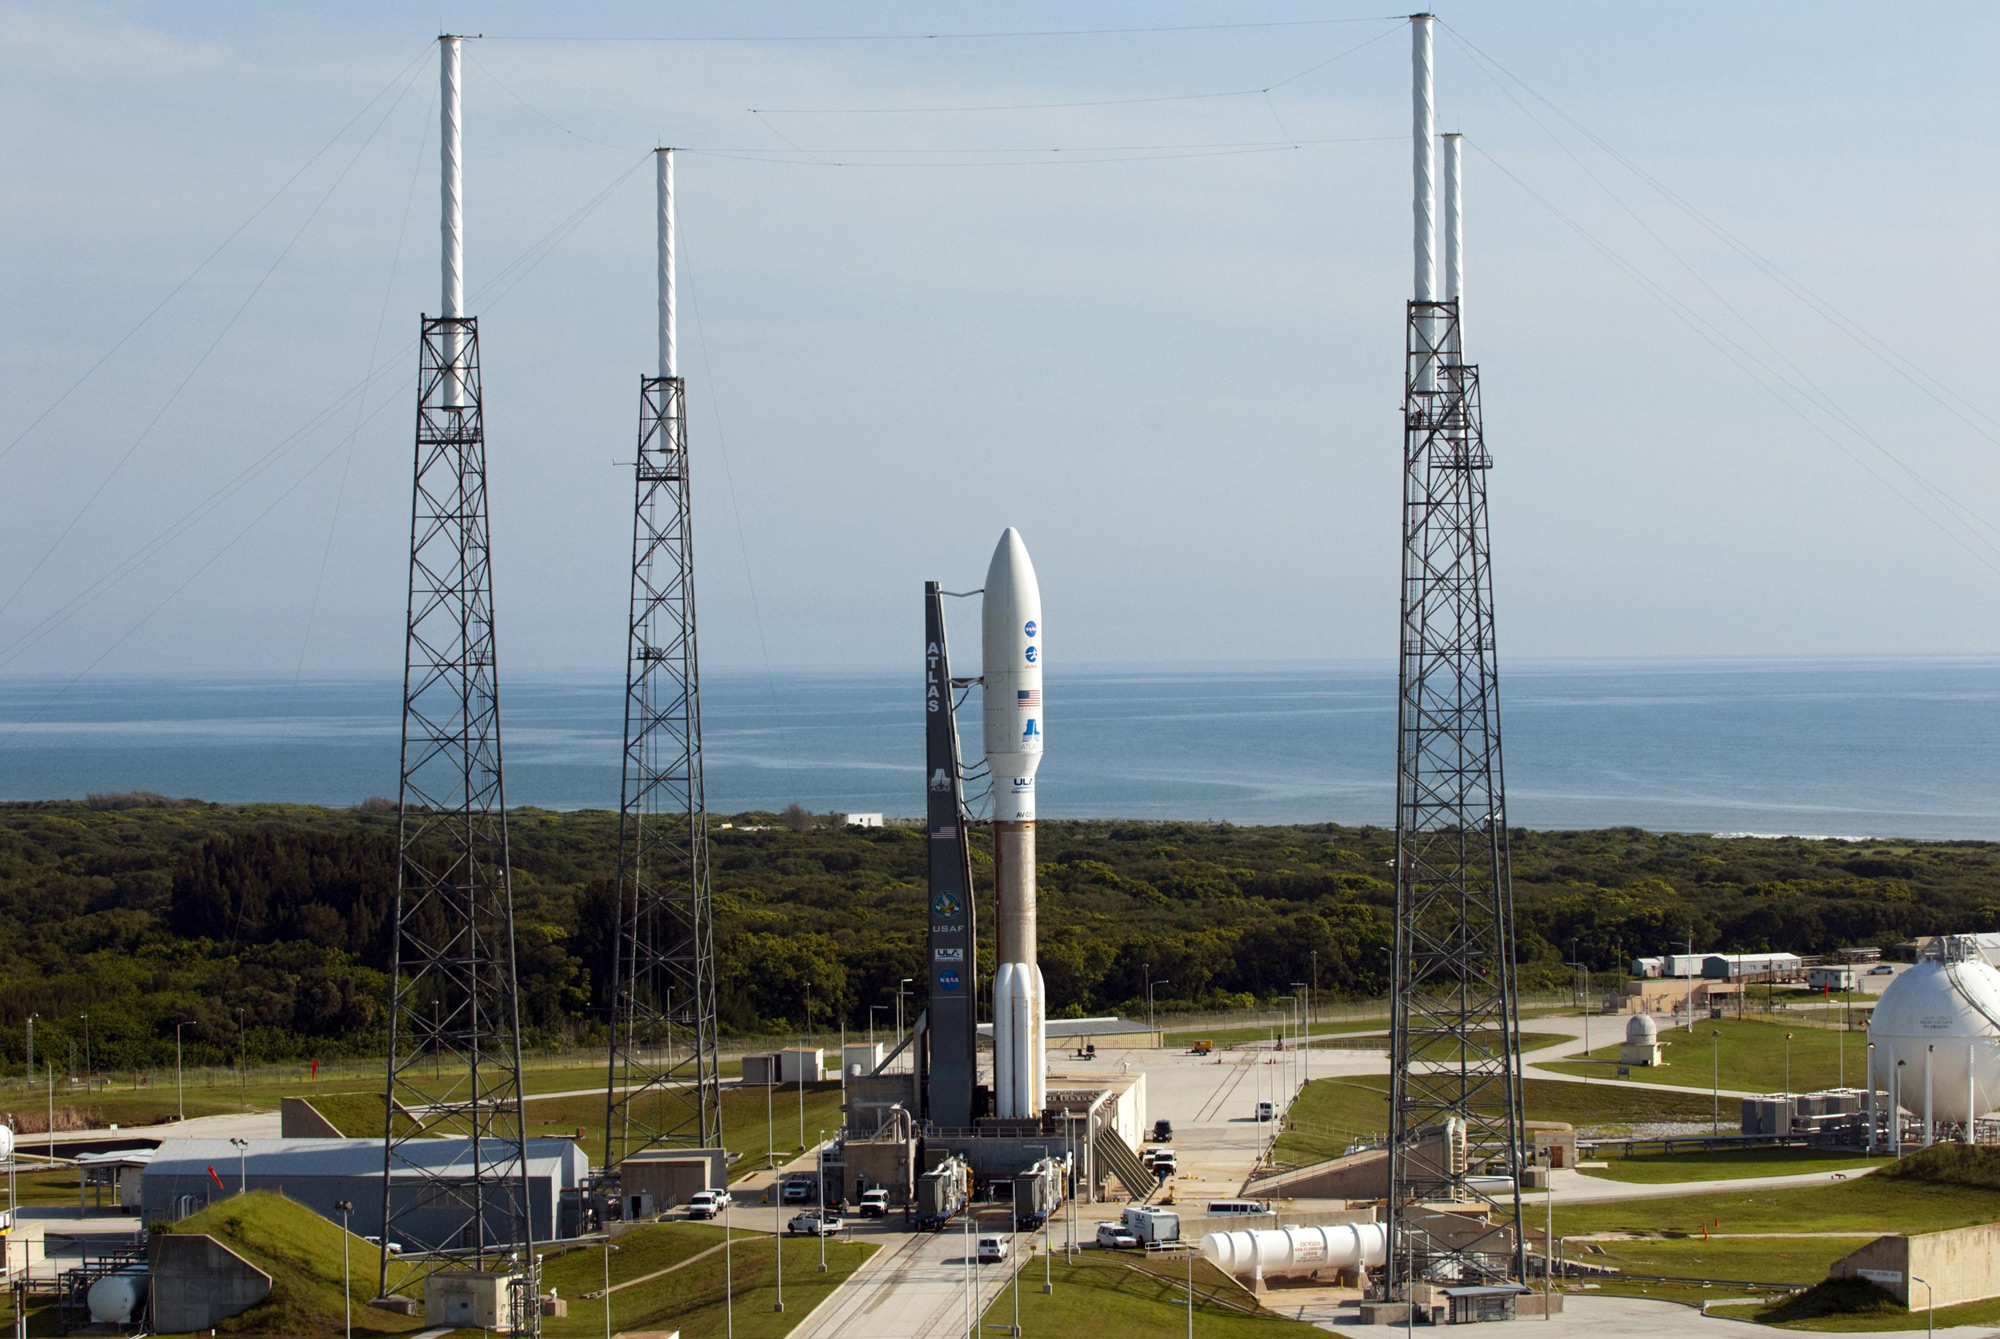 Juno Spacecraft Awaits Launch